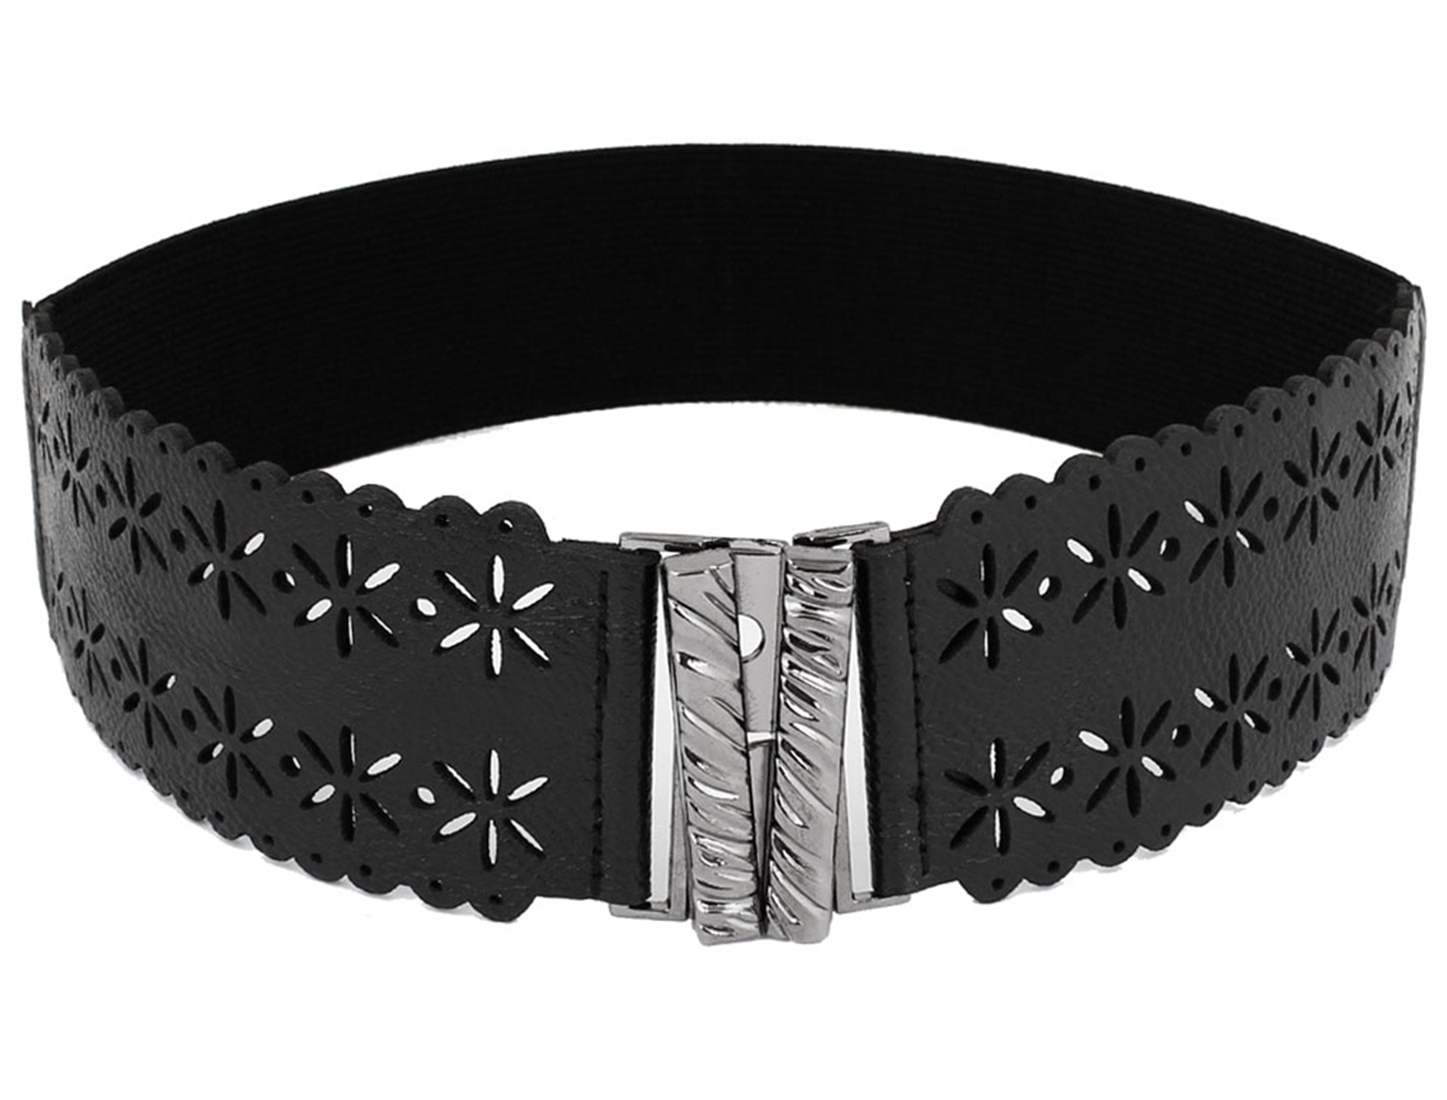 Interlocking Buckle Hollow Out Flower Decor Black Elastic Waist Belt for Women